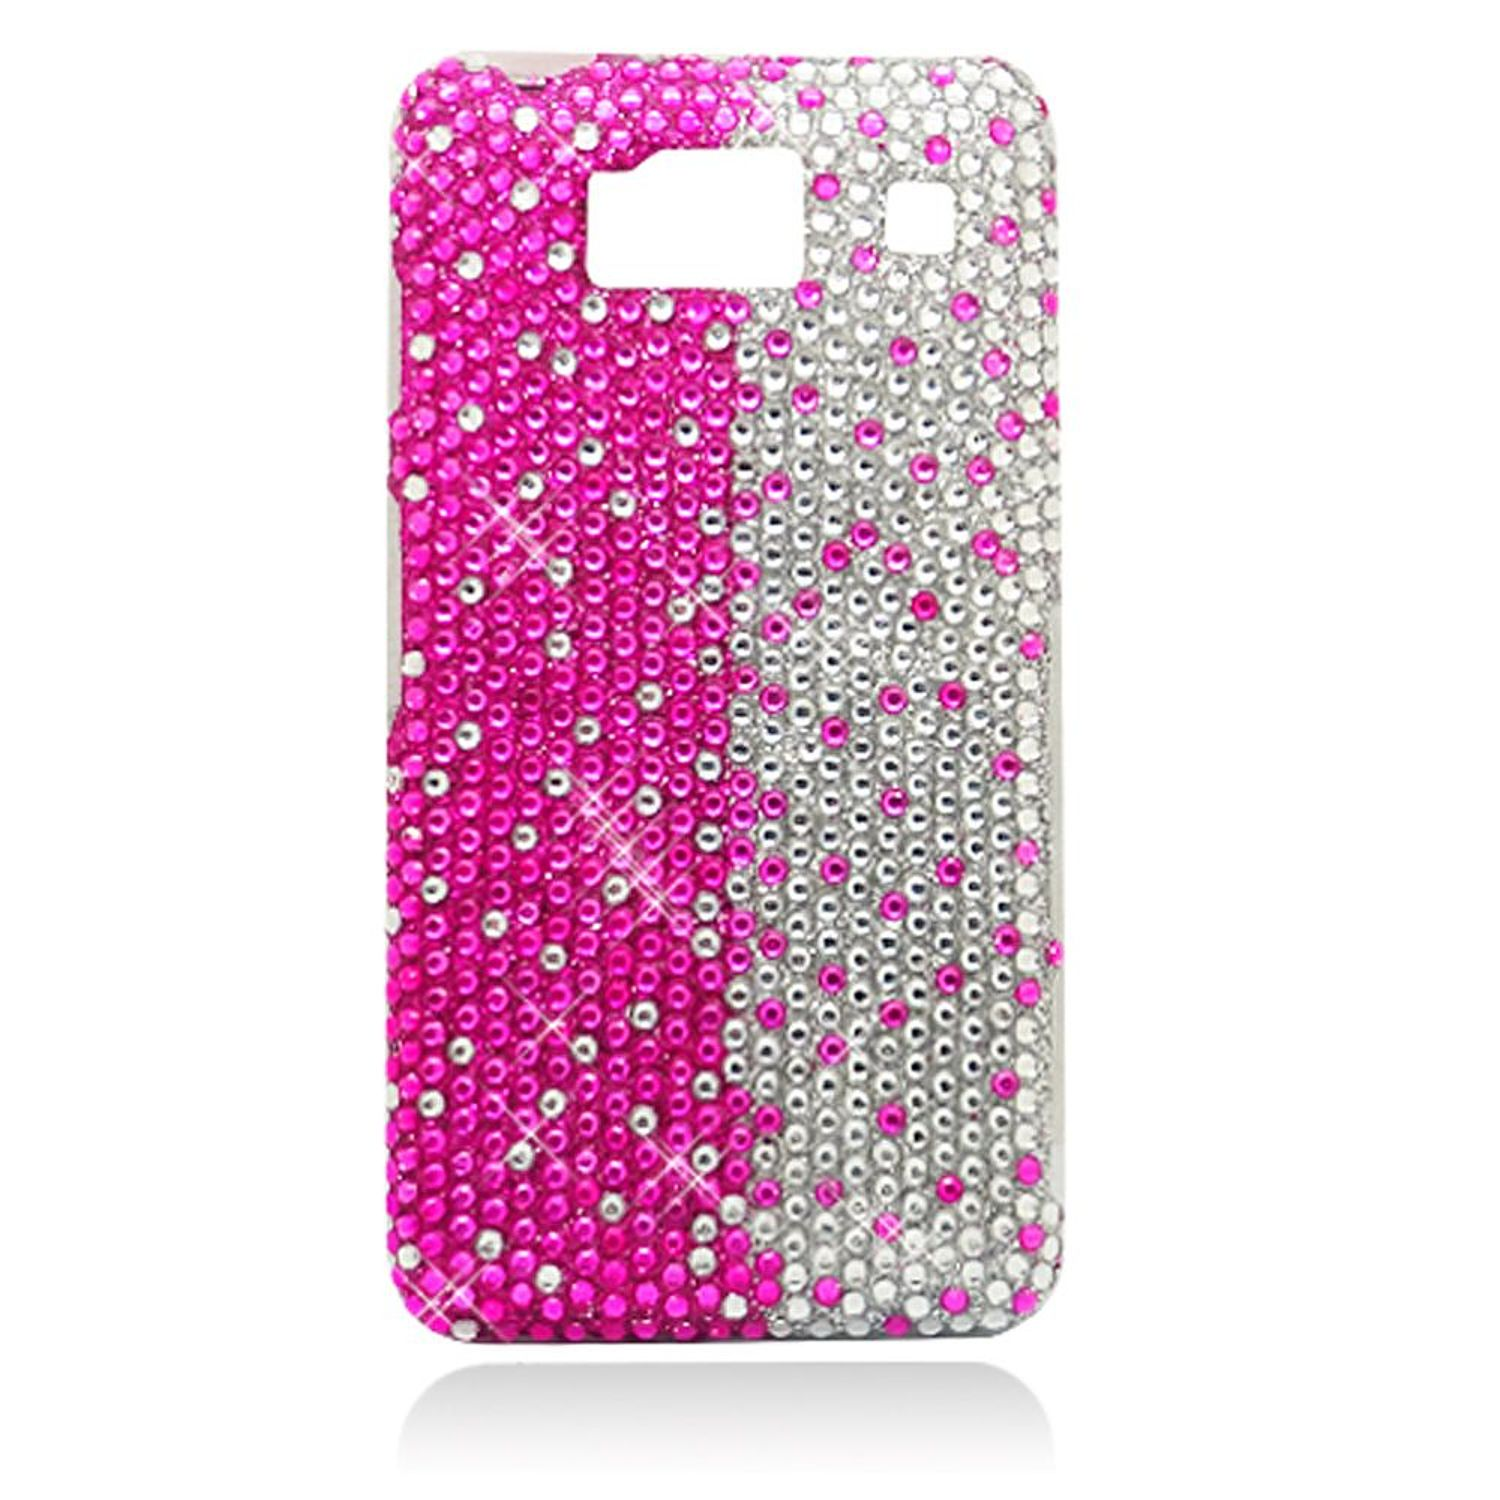 Motorola Droid Razr HD case, by Insten Rhinestone Diamond Bling Hard Snap-in Case Cover For Motorola Droid Razr HD XT926, Hot Pink/Silver